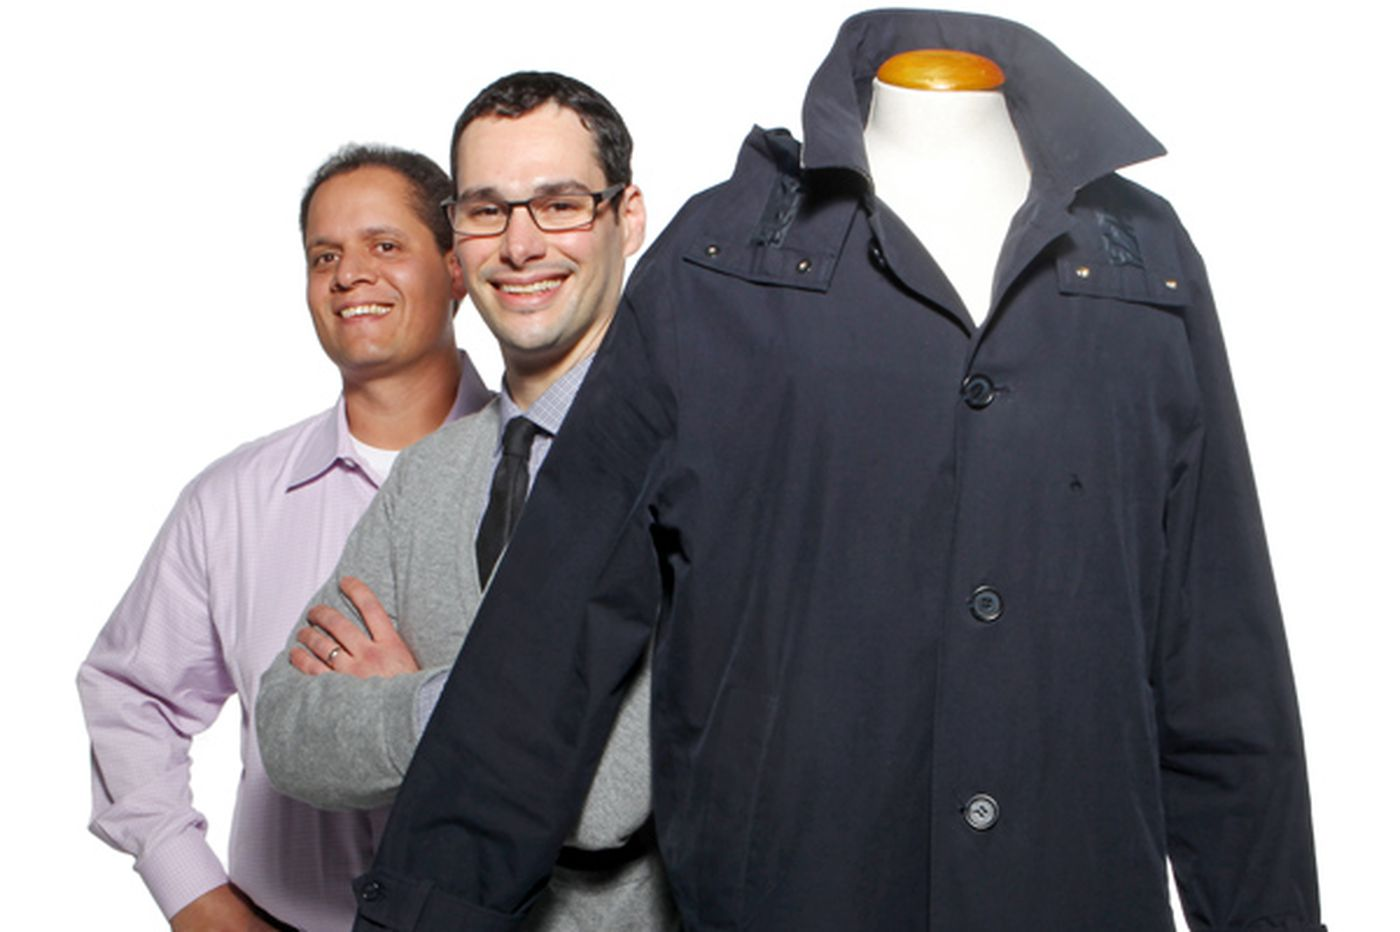 Diane Mastrull: Two entrepreneurs see big future for trench coats